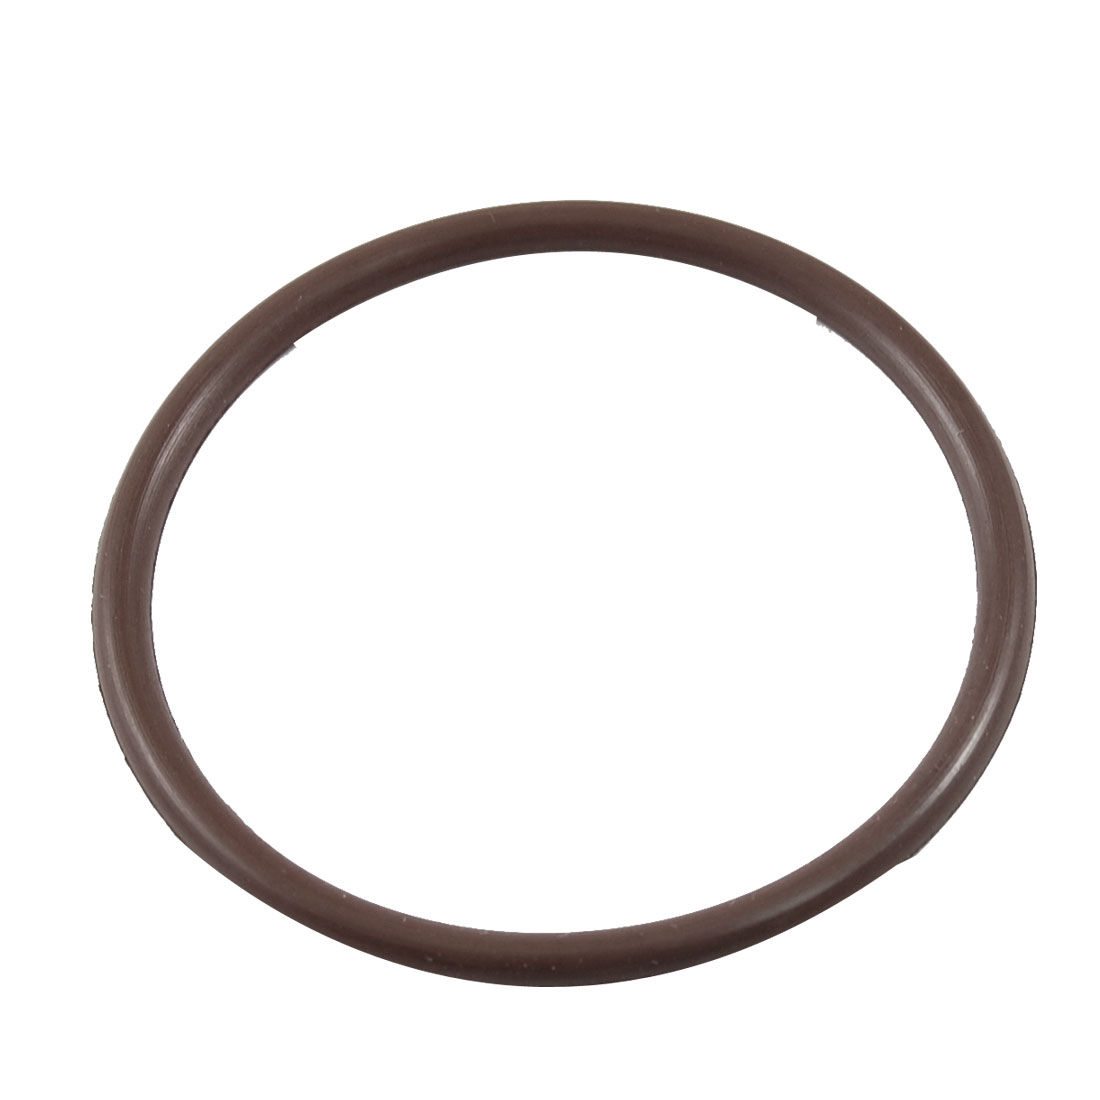 48mm OD 3mm Thickness Coffee Color Fluorine Rubber O-ring Oil Seal